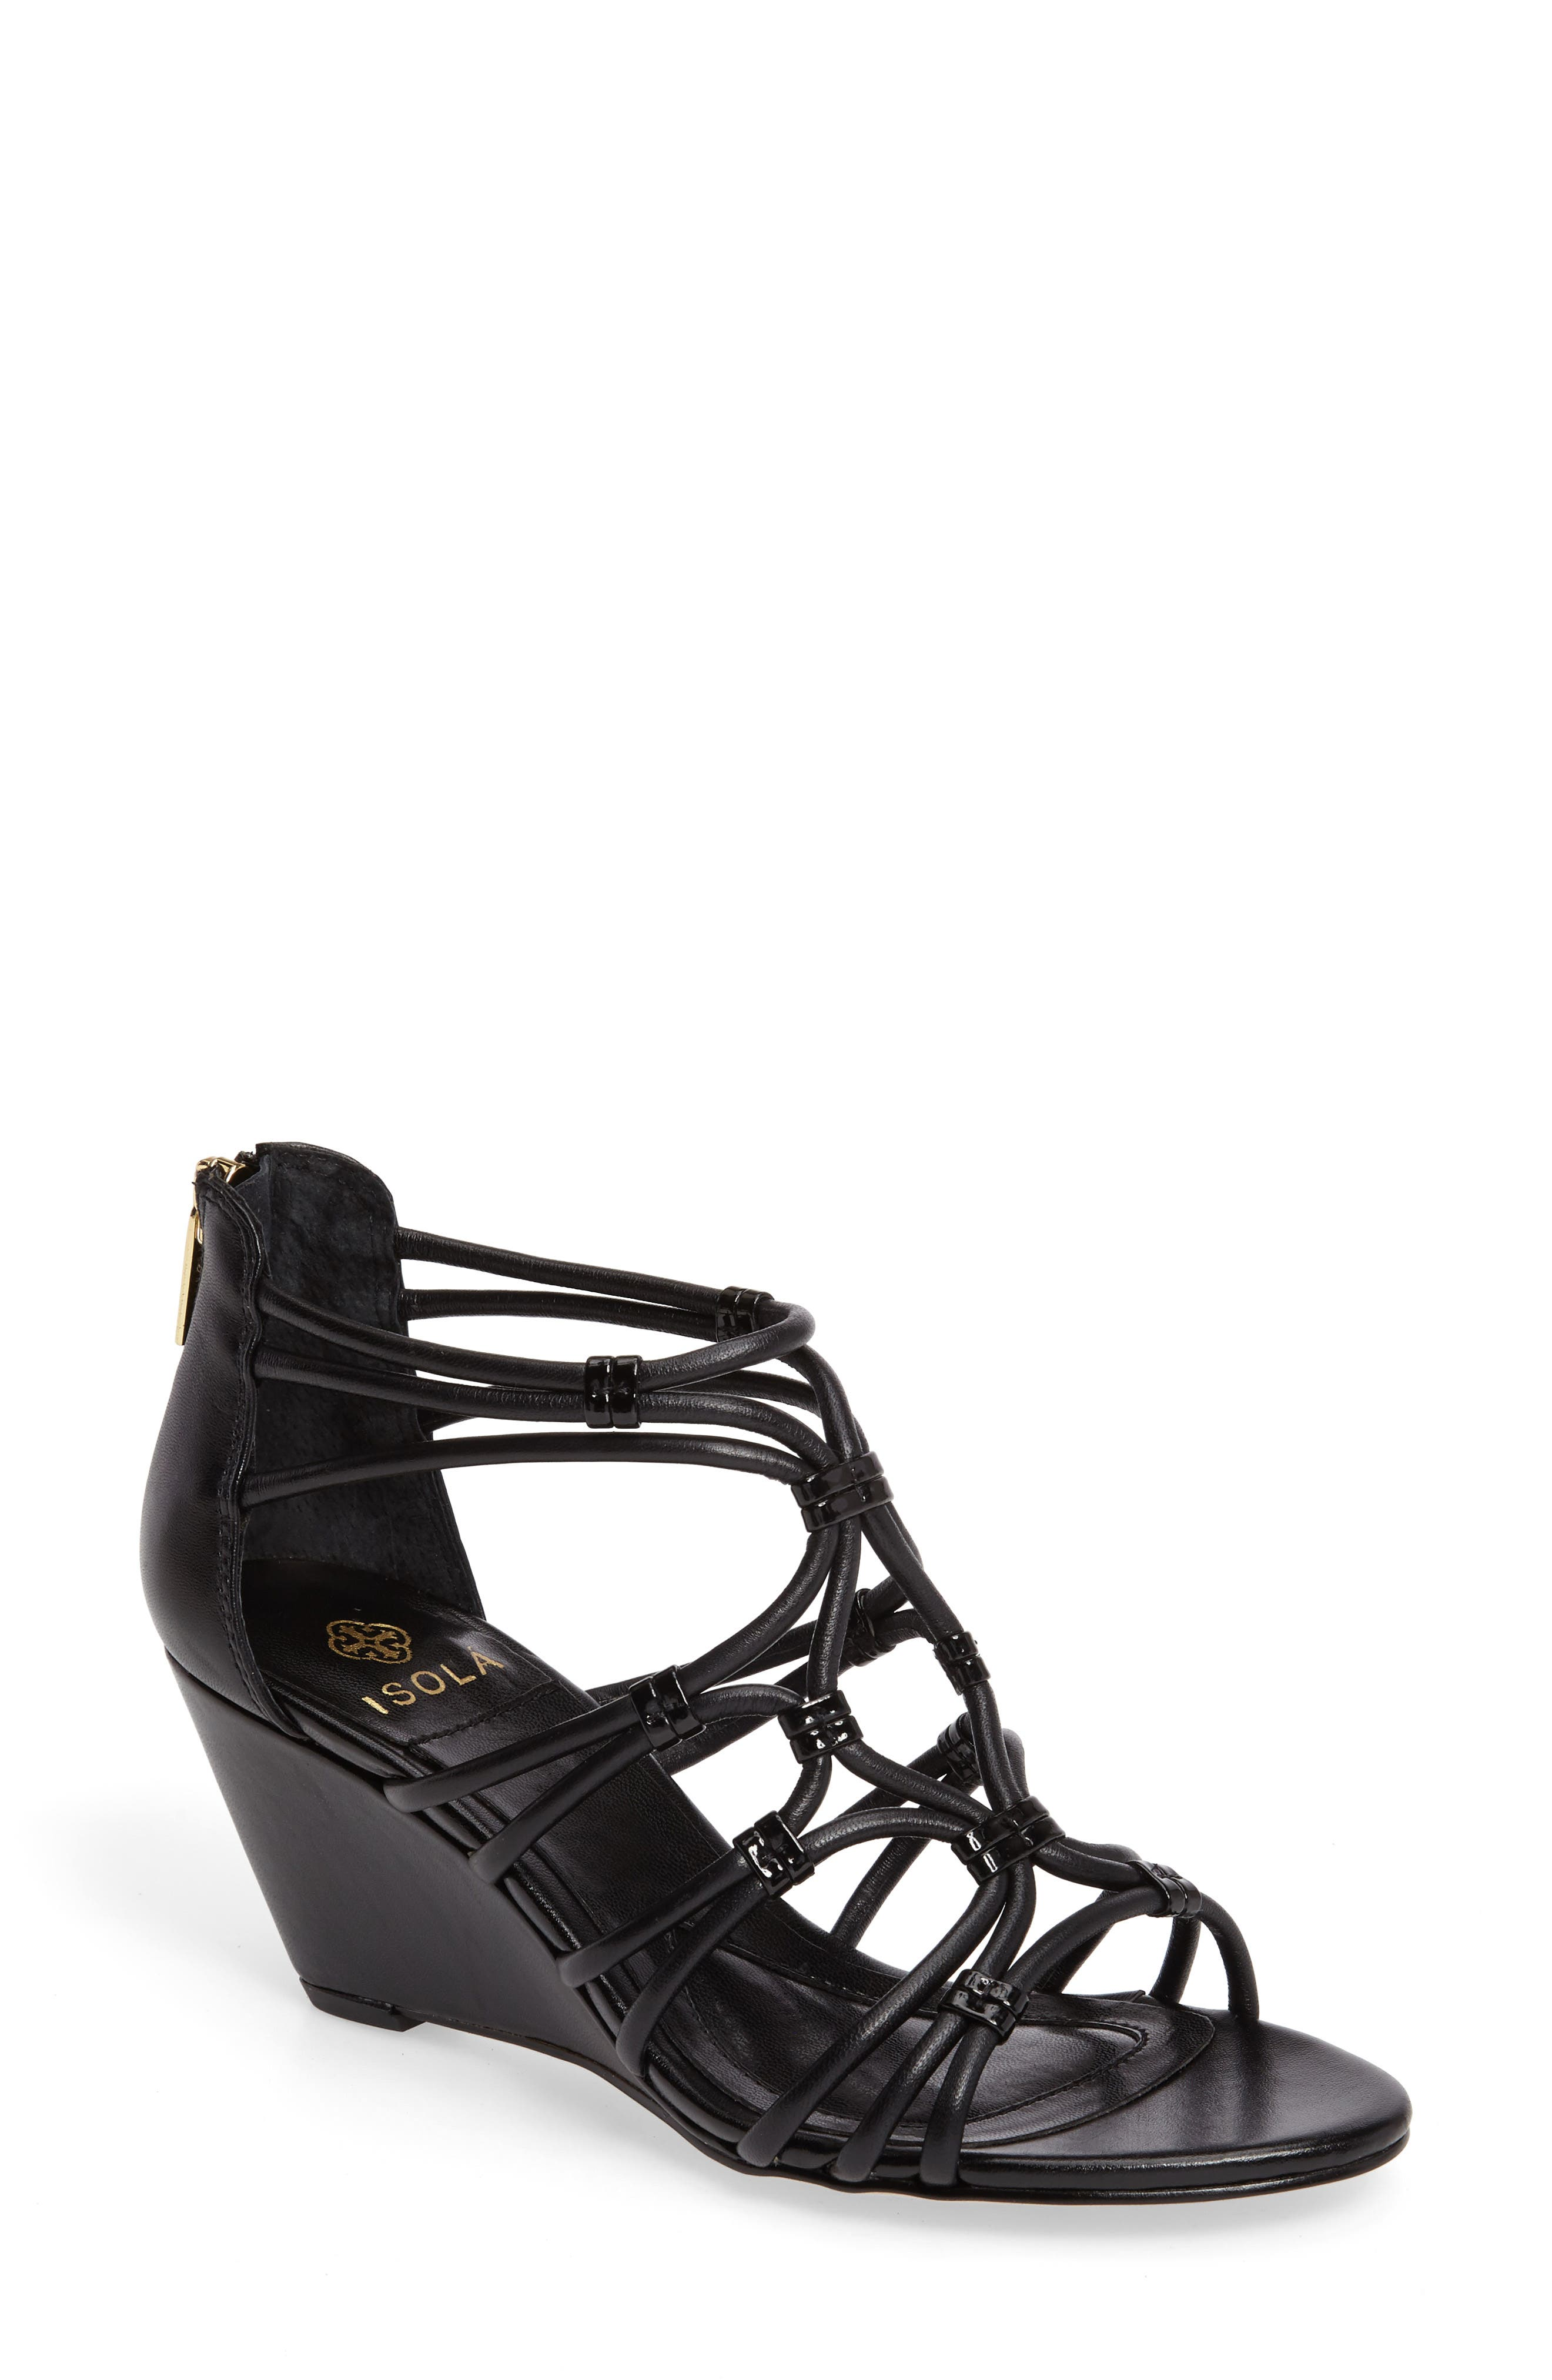 Floral Strappy Wedge Sandal,                             Main thumbnail 1, color,                             001